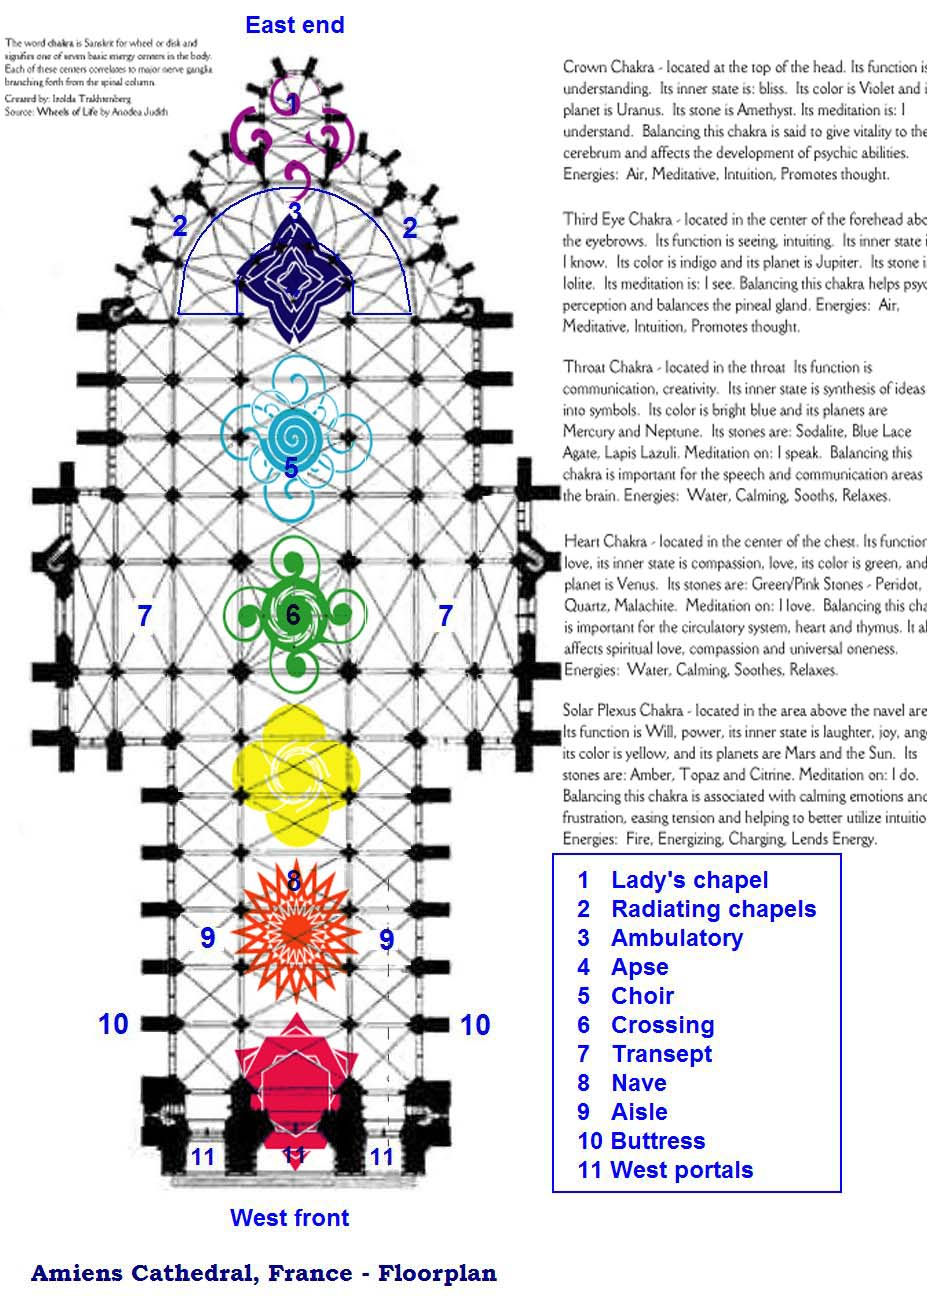 Pearls Of War The CHAKRAS And CATHEDRALS